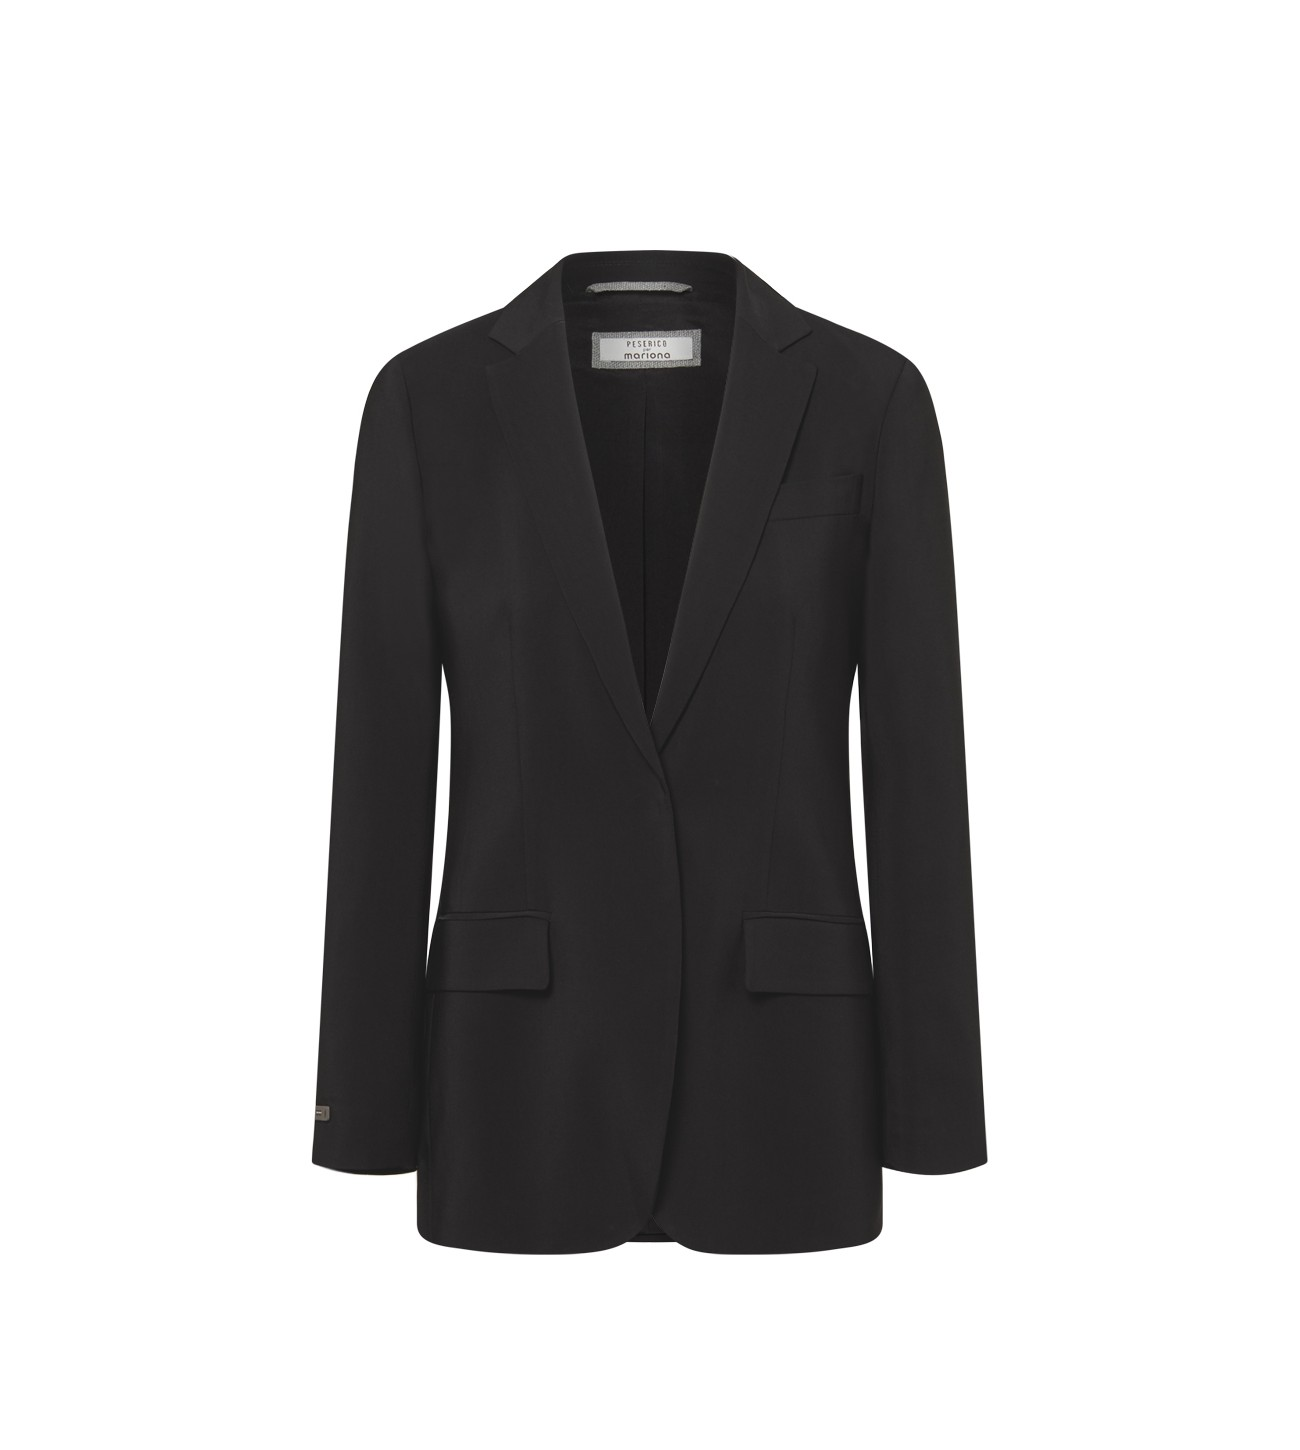 PESERICO_CREPE_BLAZER_ONE_BUTTON_MARIONA_FASHION_CLOTHING_WOMAN_SHOP_ONLINE_S01834